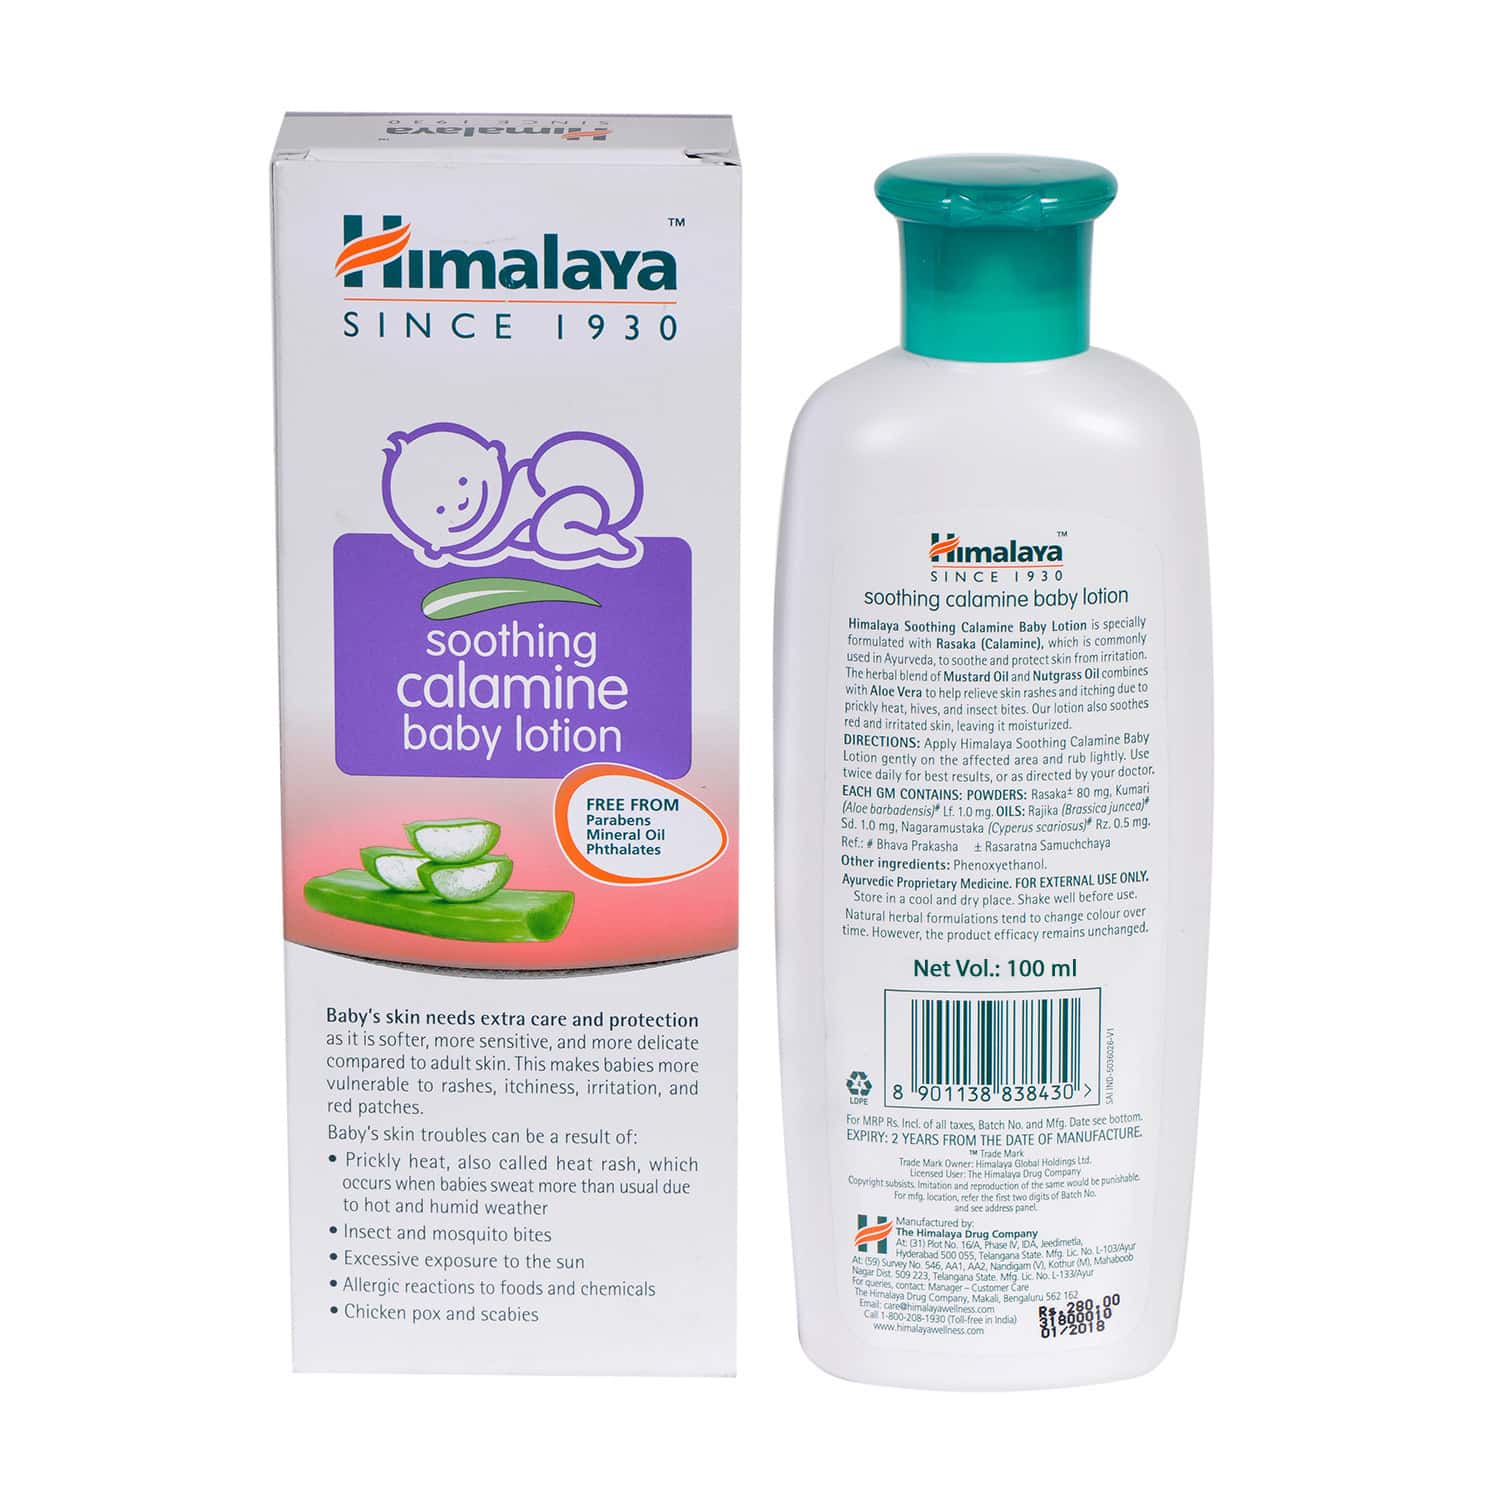 Himalaya Baby Soothing Calamine Baby Lotion Bottle Of 100 Ml